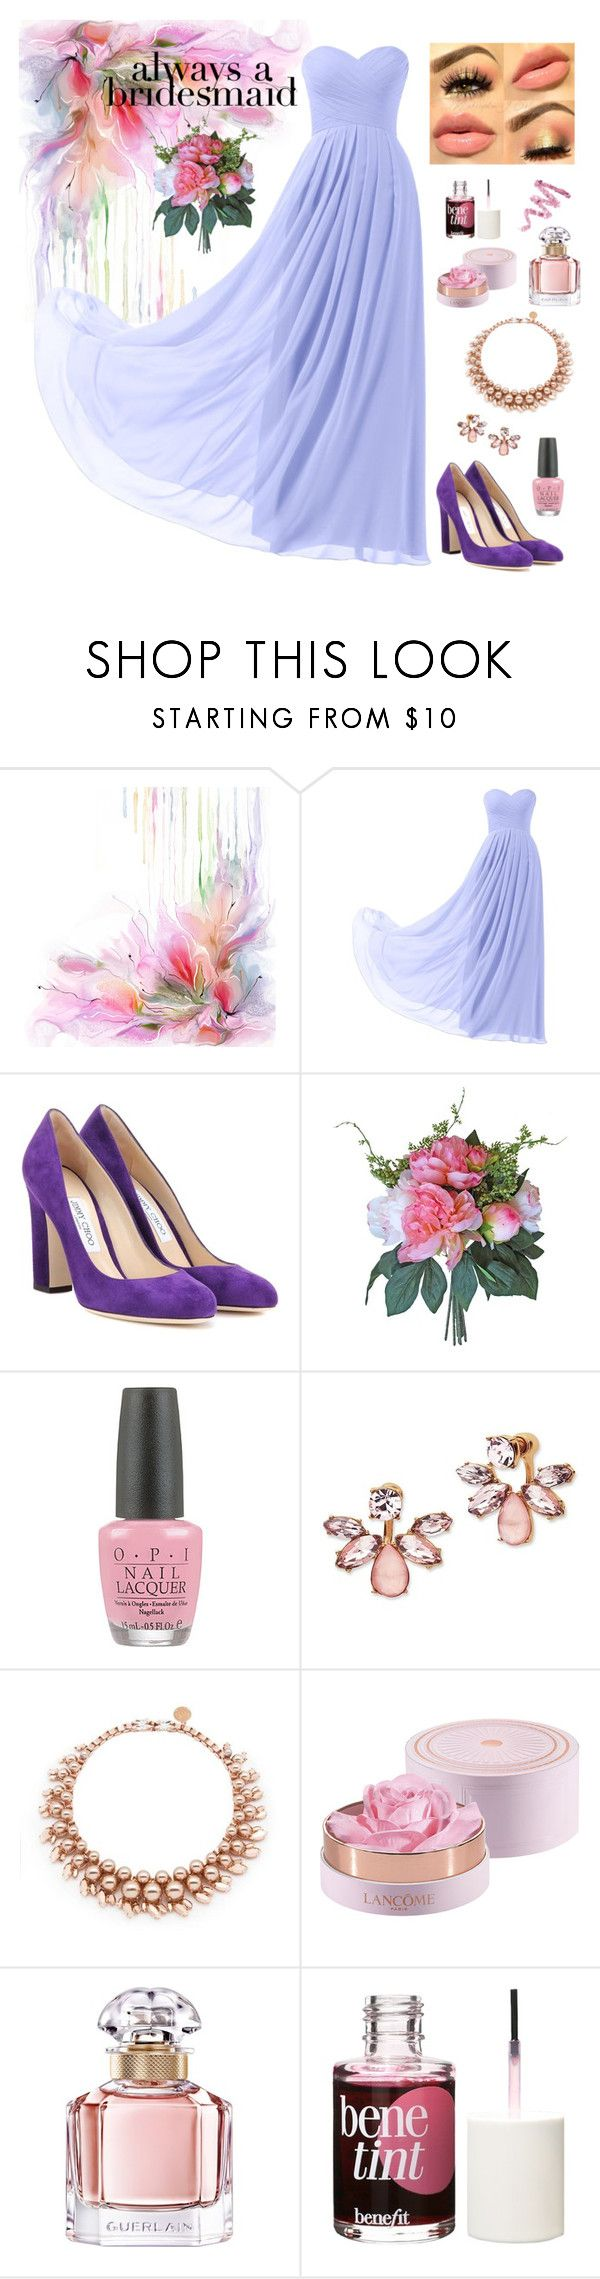 """Perfect bridesmaid"" by lanagur on Polyvore featuring мода, Remedios, Jimmy Choo, OPI, Marchesa, Ellen Conde, Lancôme, Guerlain, Benefit и Cynthia Rowley"